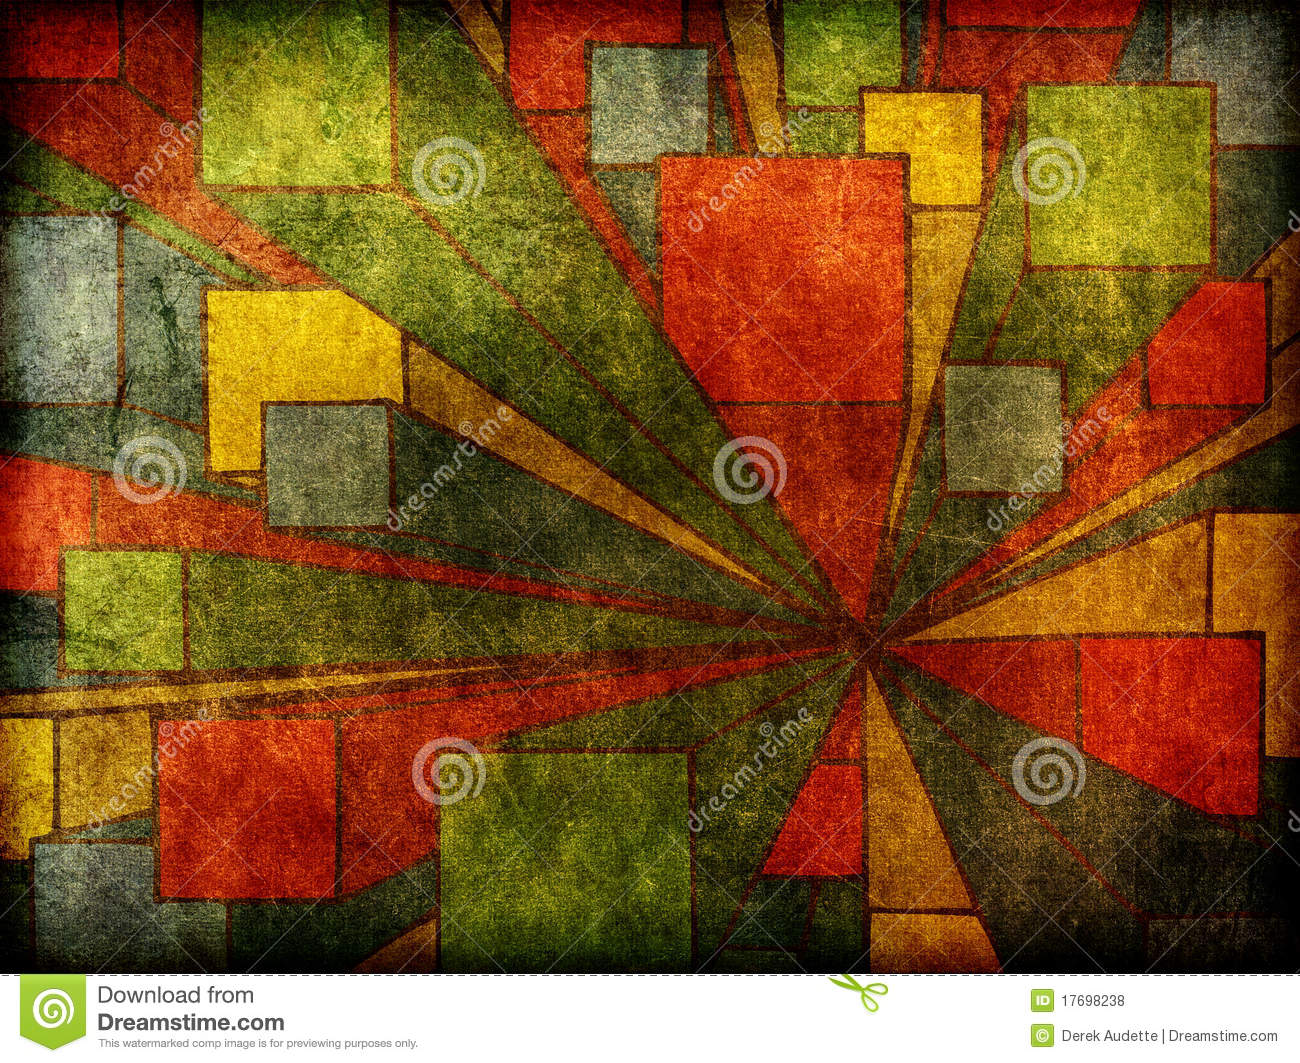 Abstract Modern Art Design Background Image Royalty Free Stock inside Abstract Art Design Images